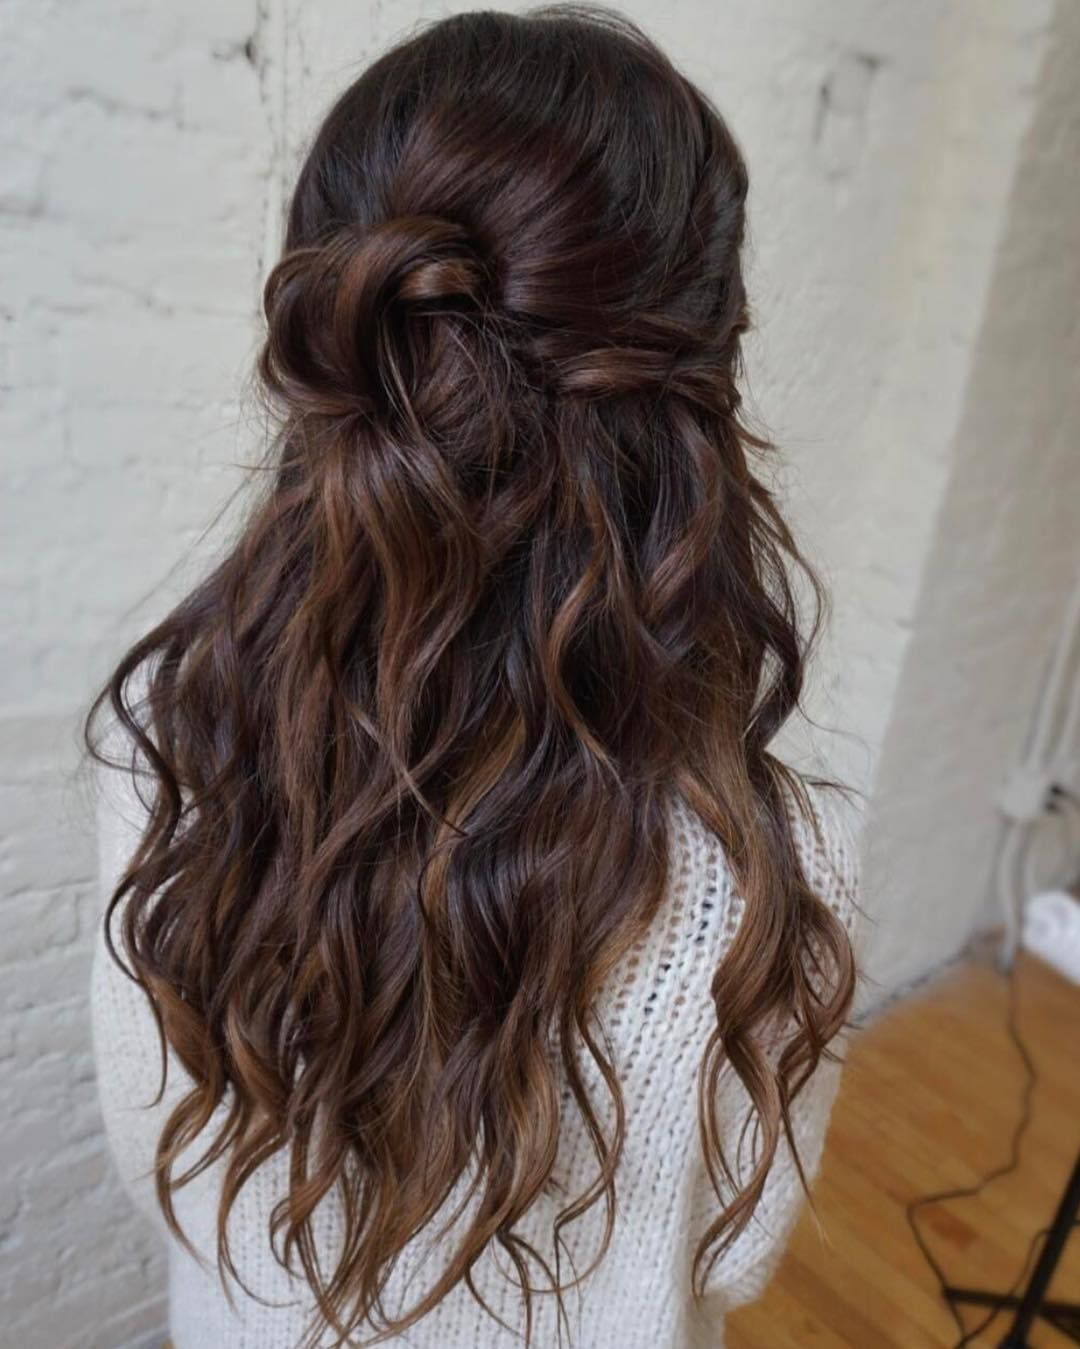 Wedding Hairstyles Boho: Wedding Hair Brunette, Wedding